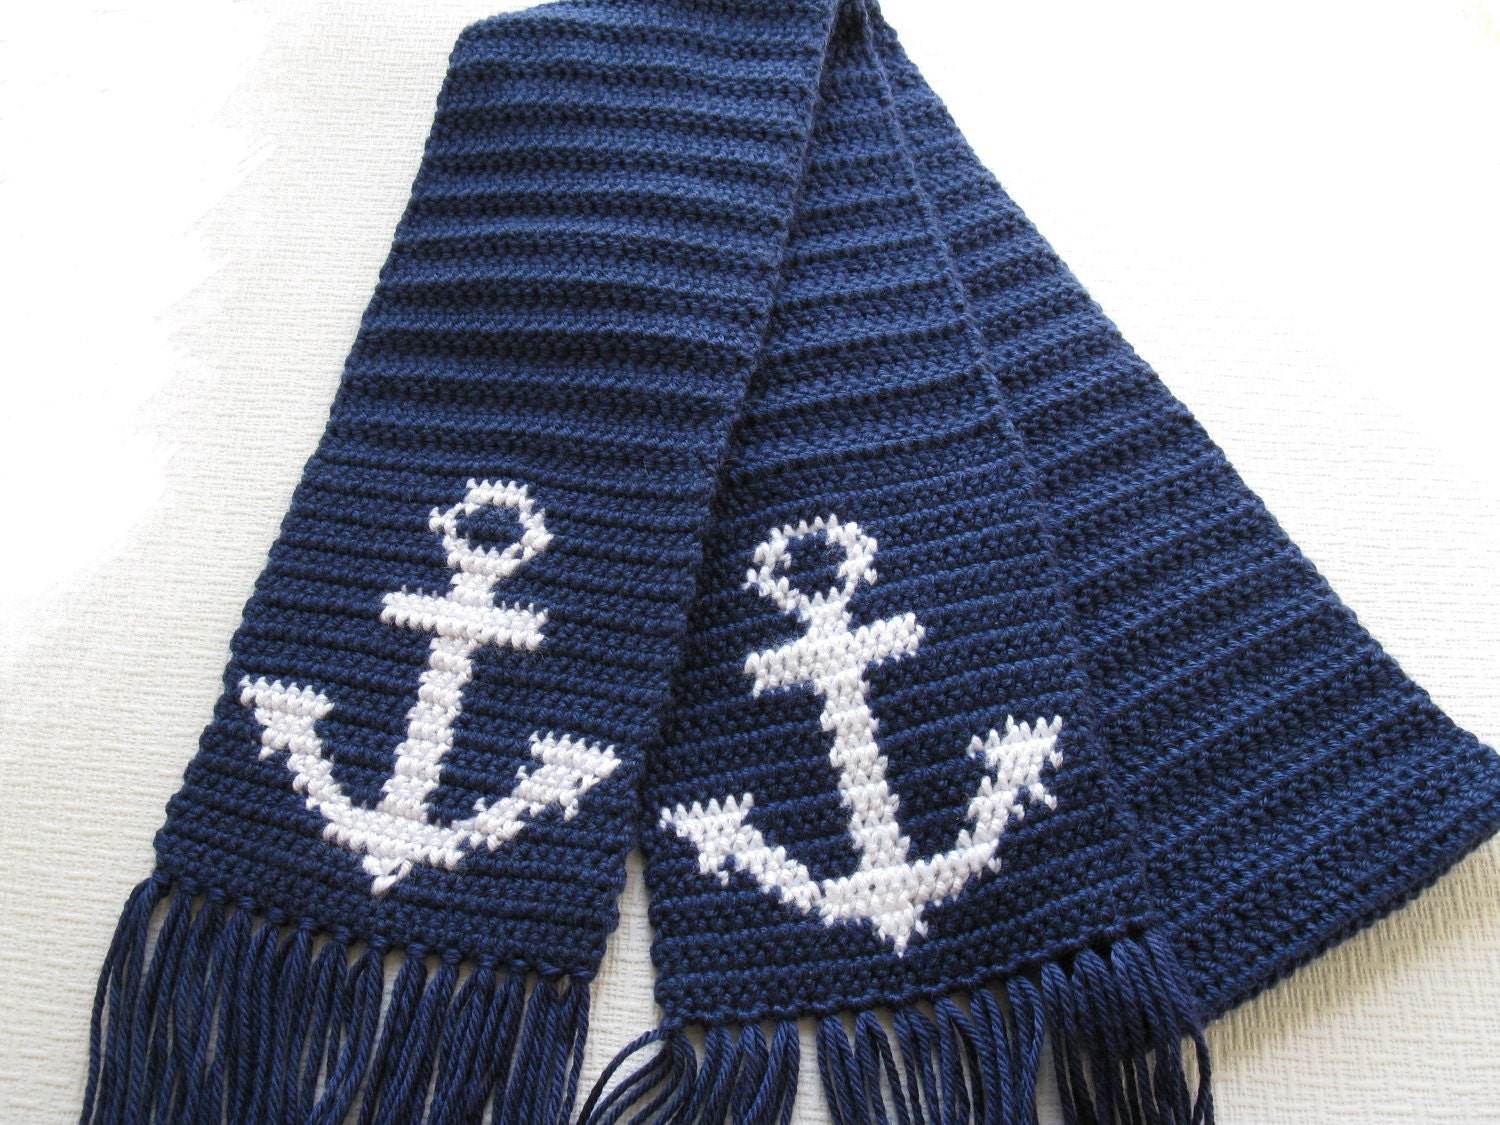 anchor scarf for navy blue crochet scarf with anchors